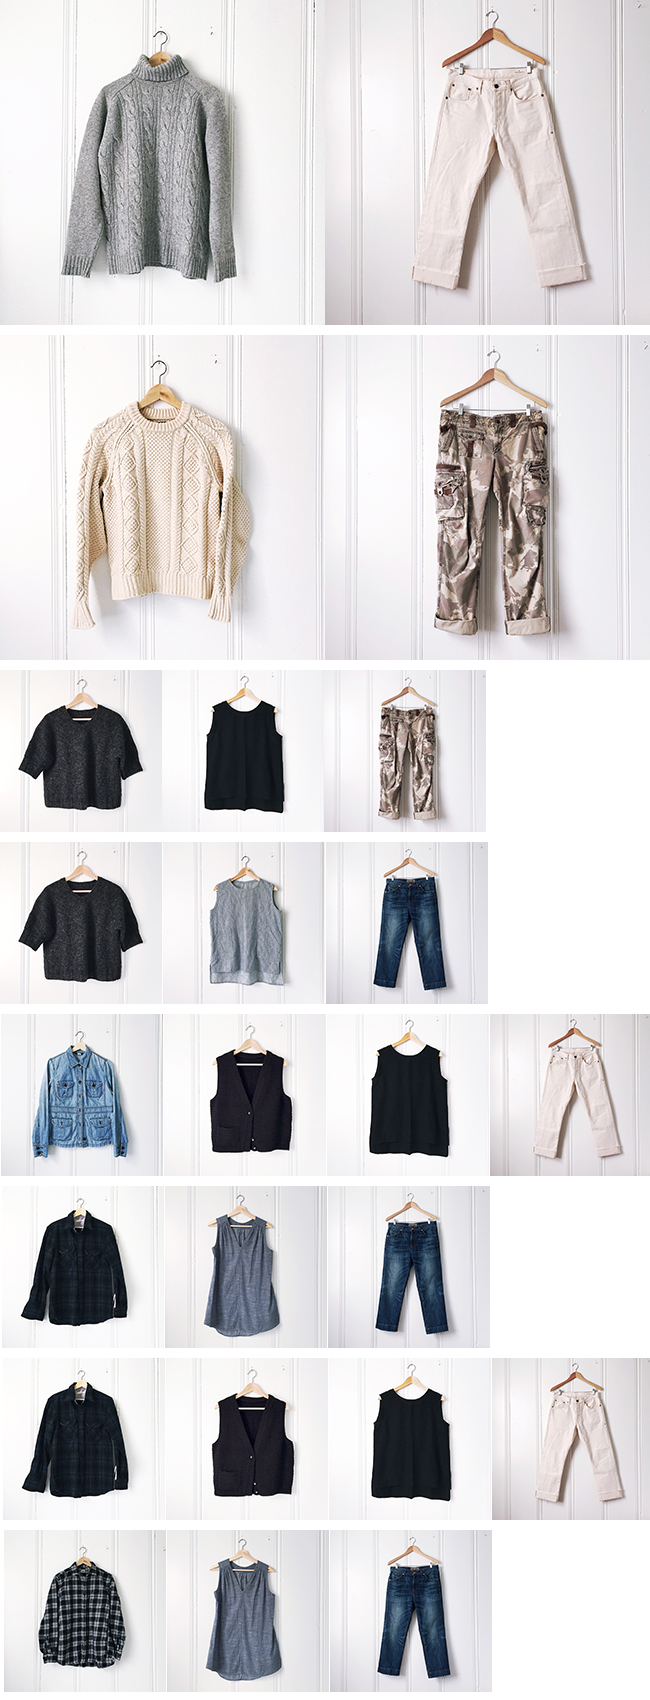 Outfits! : Winter '16 wardrobe planning, Part 3